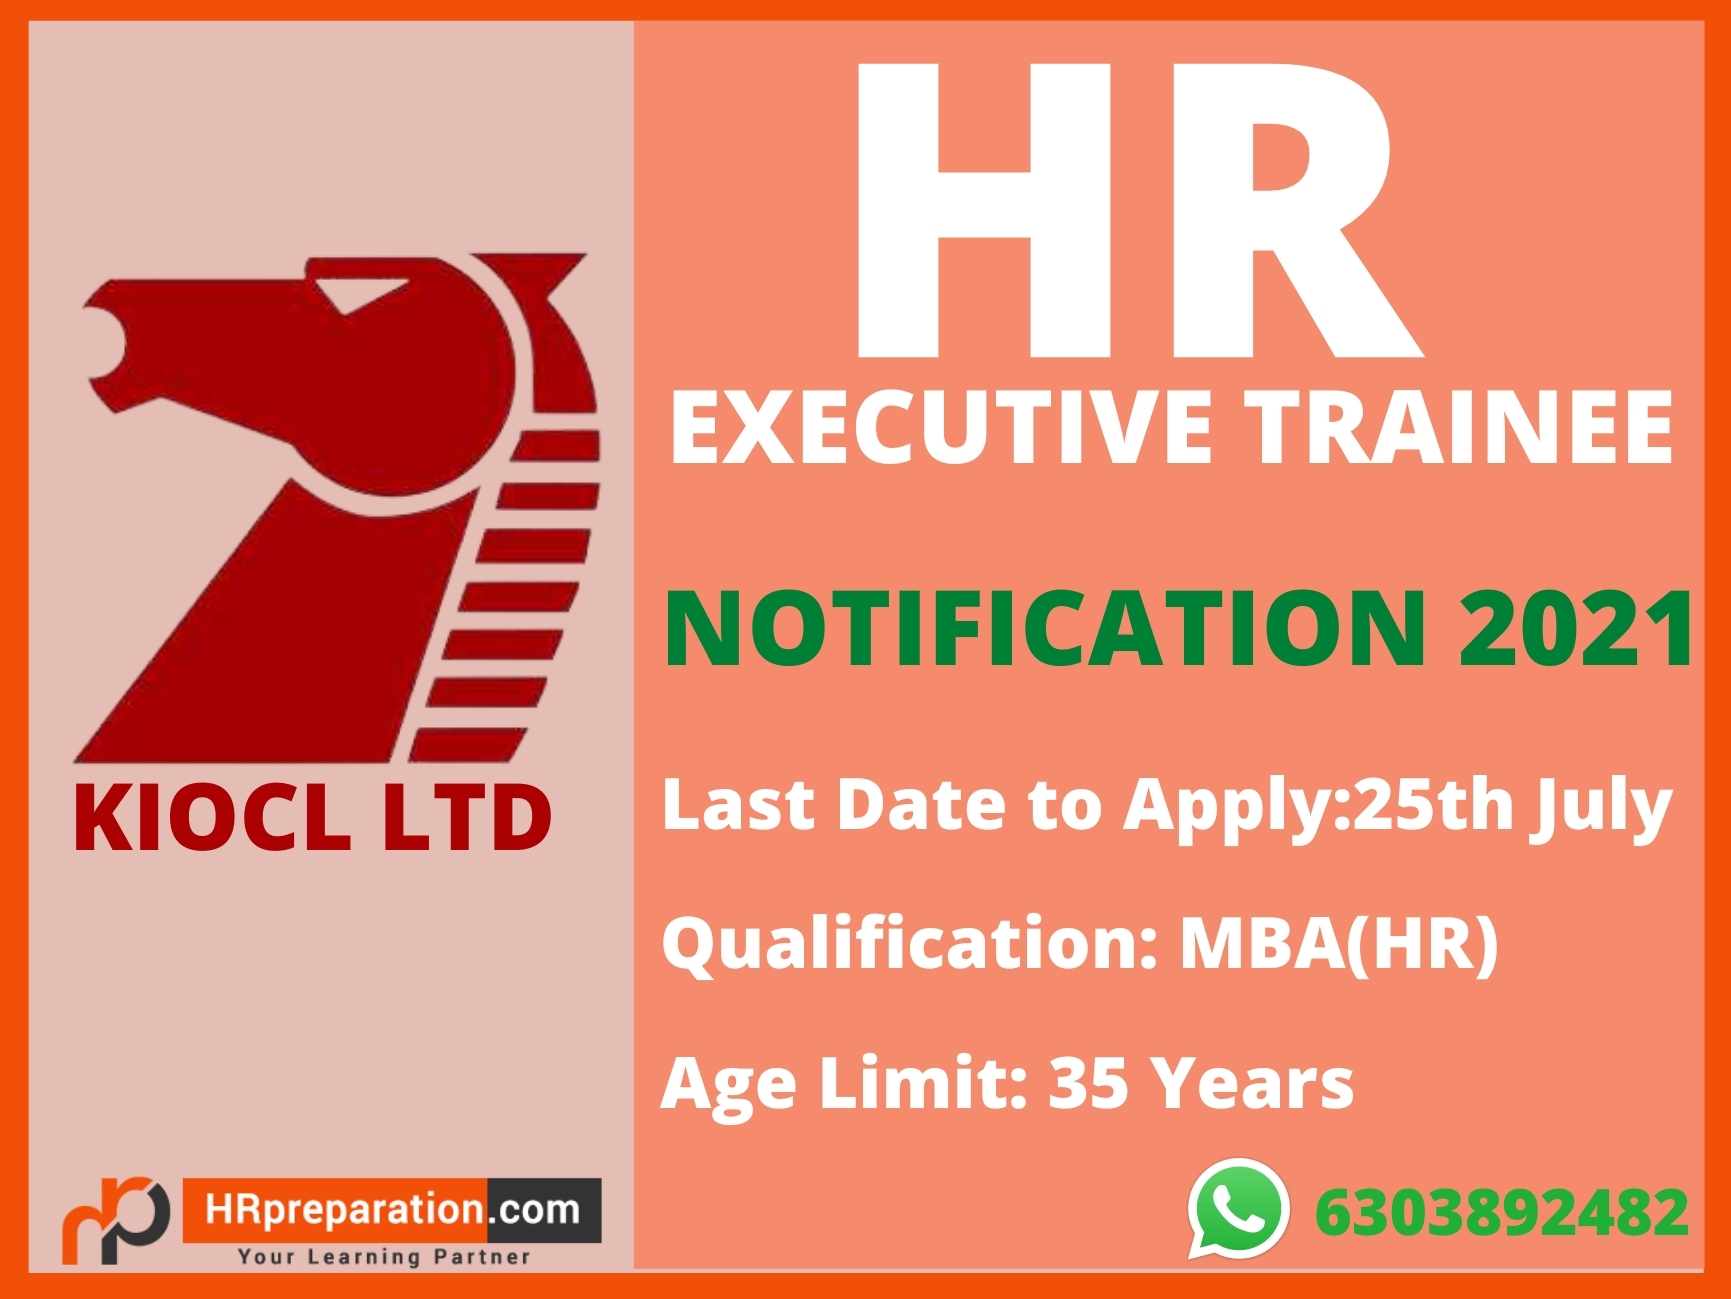 KIOCL HR Executive Trainee Notification 2021 out ,KIOCL HR Recruitment Notification apply now